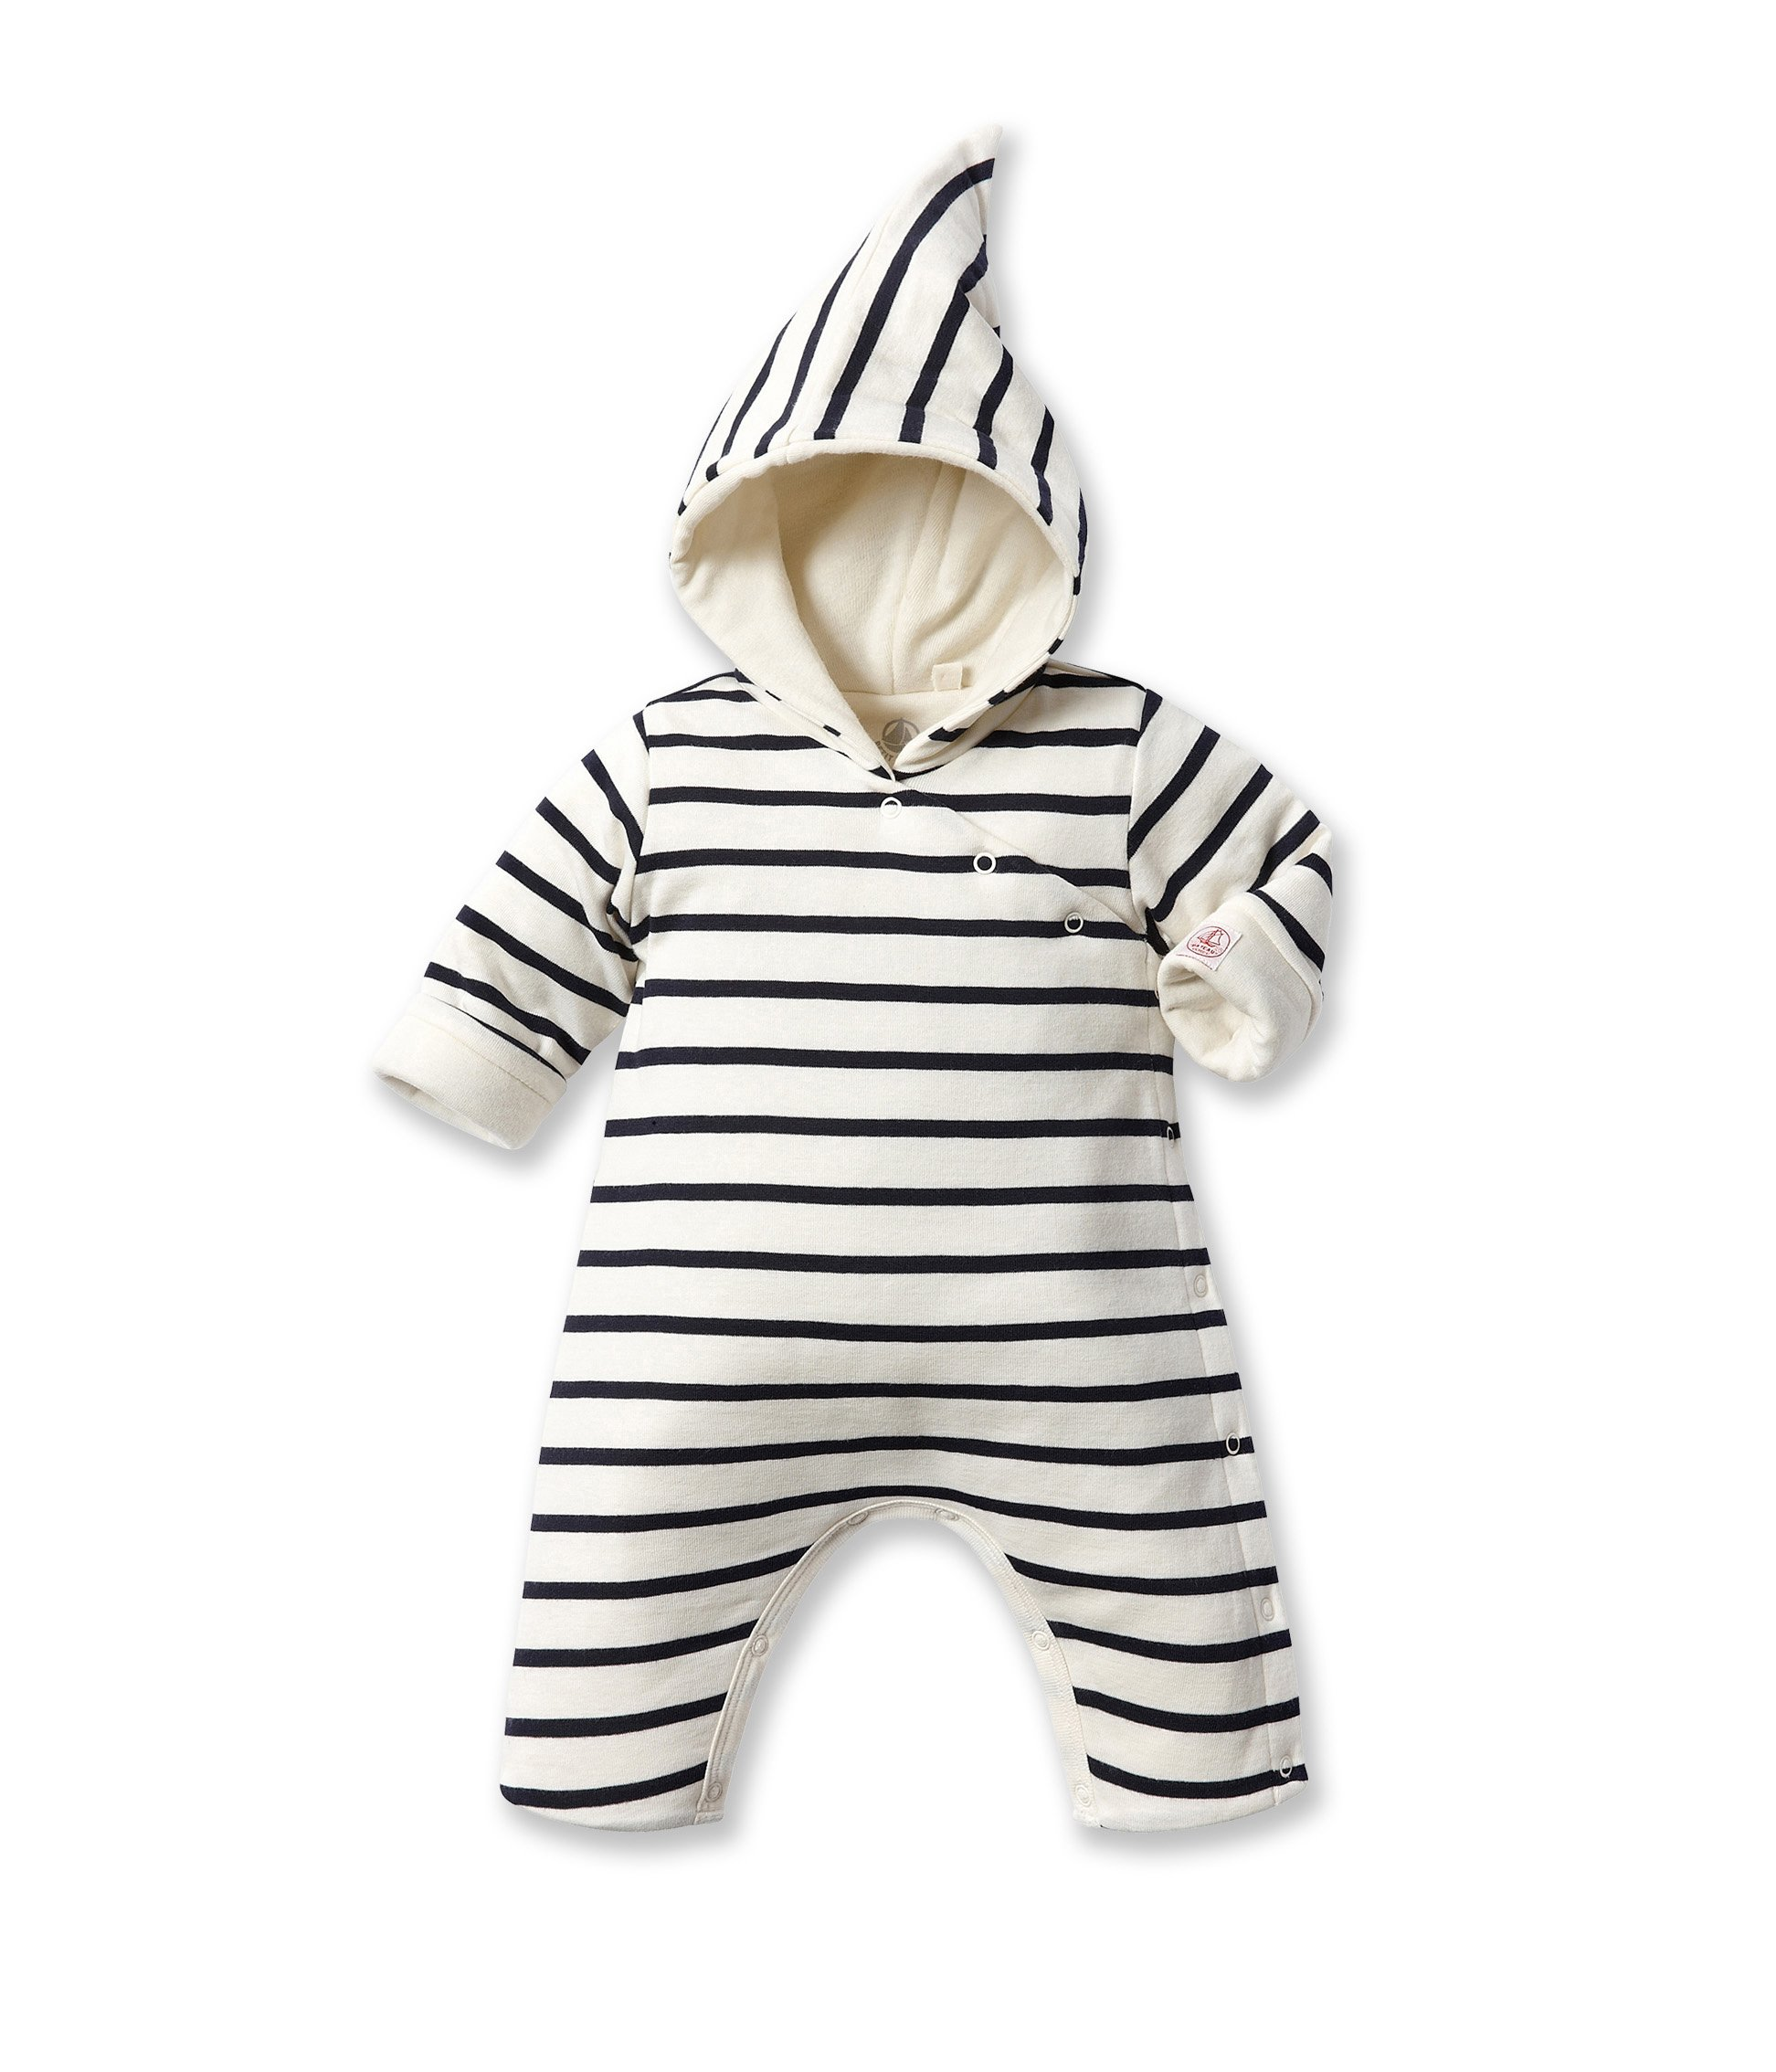 Petit Bateau Baby-Boys Newborn Hooded Striped Romper, Navy/White, 3 Months